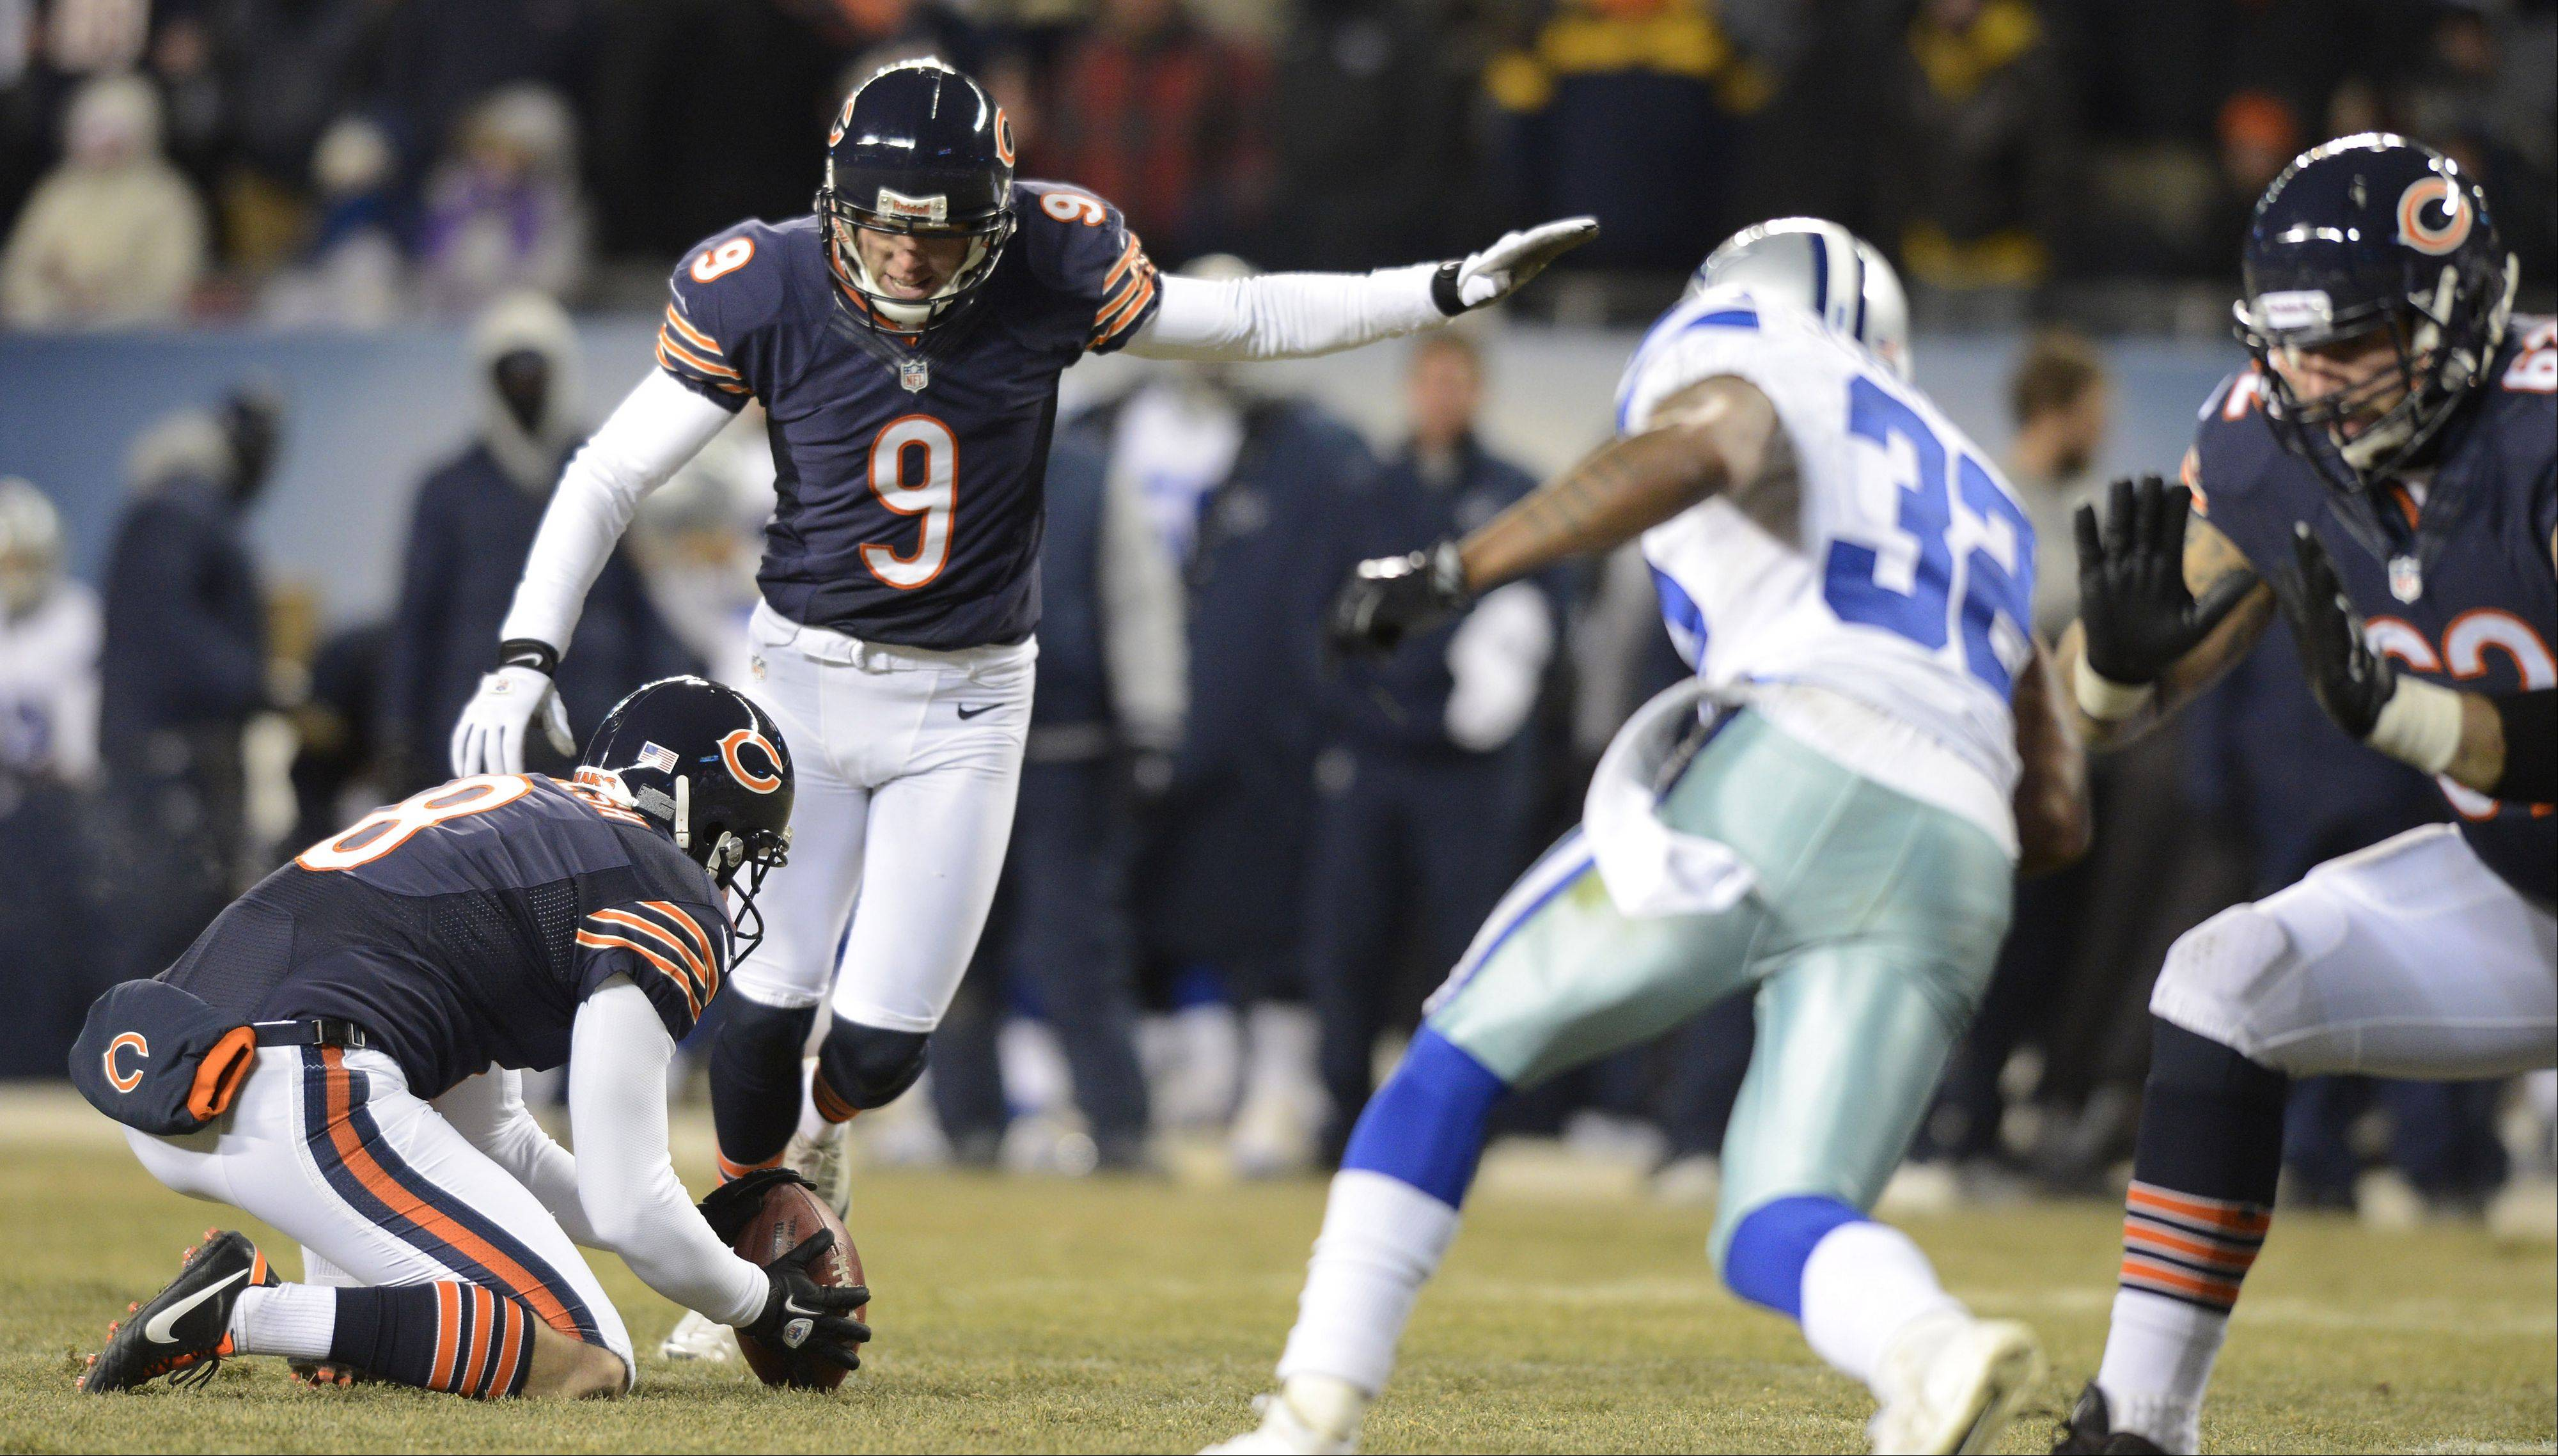 With Adam Podlesh holding, Chicago Bears kicker Robbie Gould kicks a field goal.